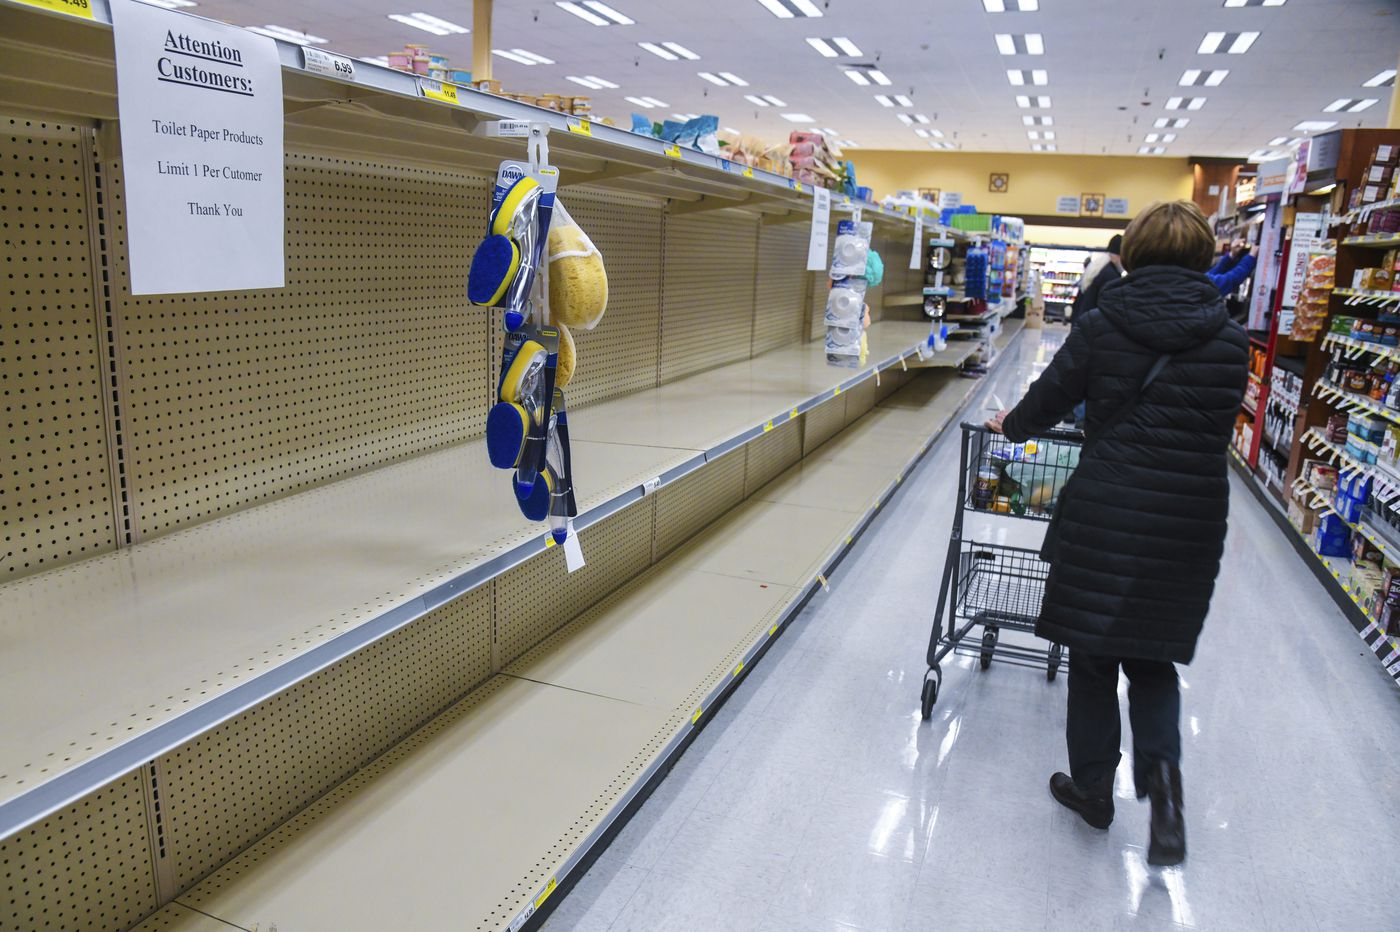 All at once, a steady U.S. economy screeches to halt amid coronavirus pandemic